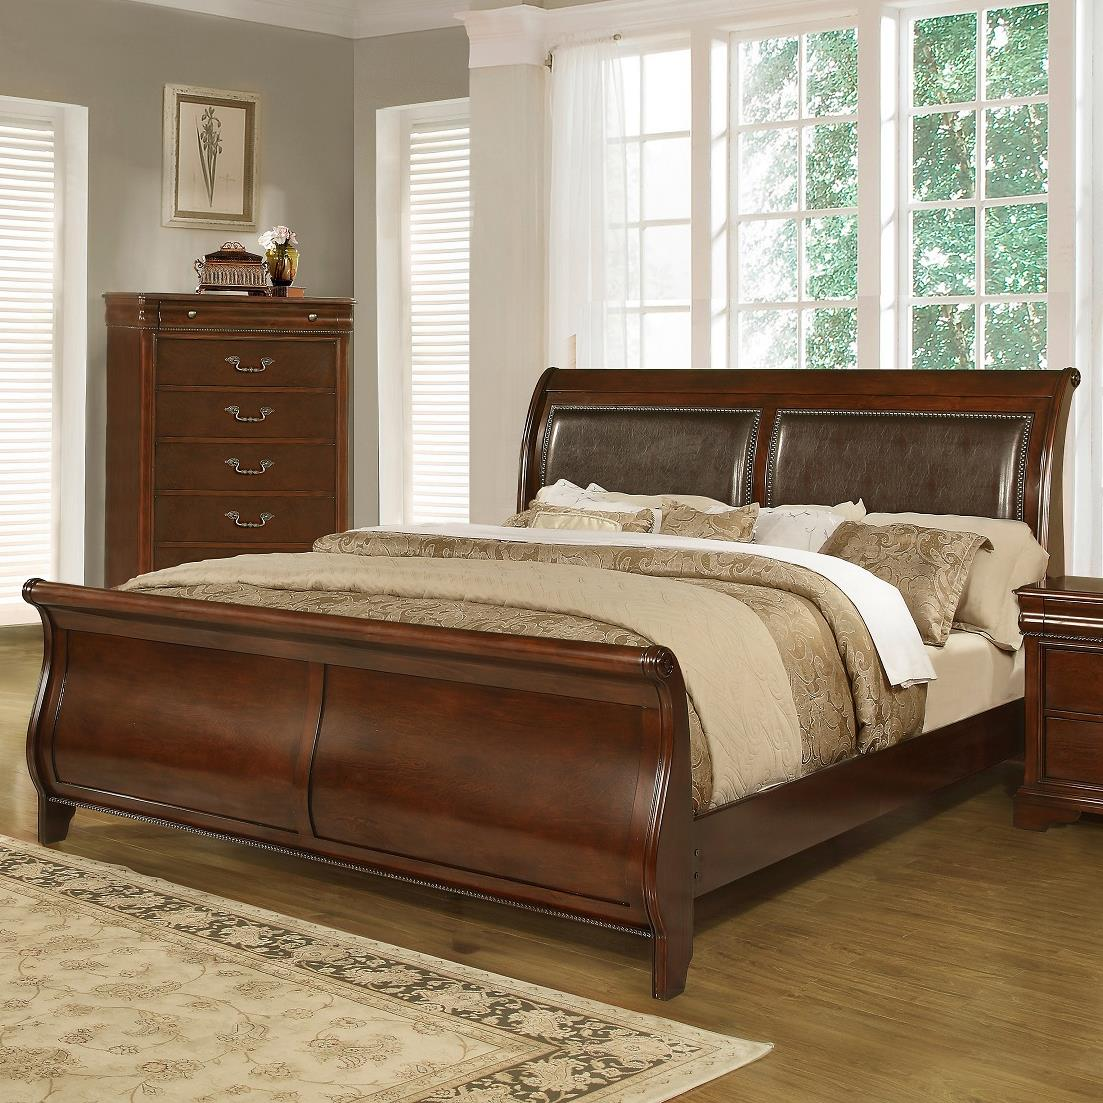 Lifestyle C4116A Queen Sleigh Bed   Item Number  C4116A QS0 QSG BSN. Lifestyle C4116A Traditional Queen Sleigh Bed   Furniture Fair